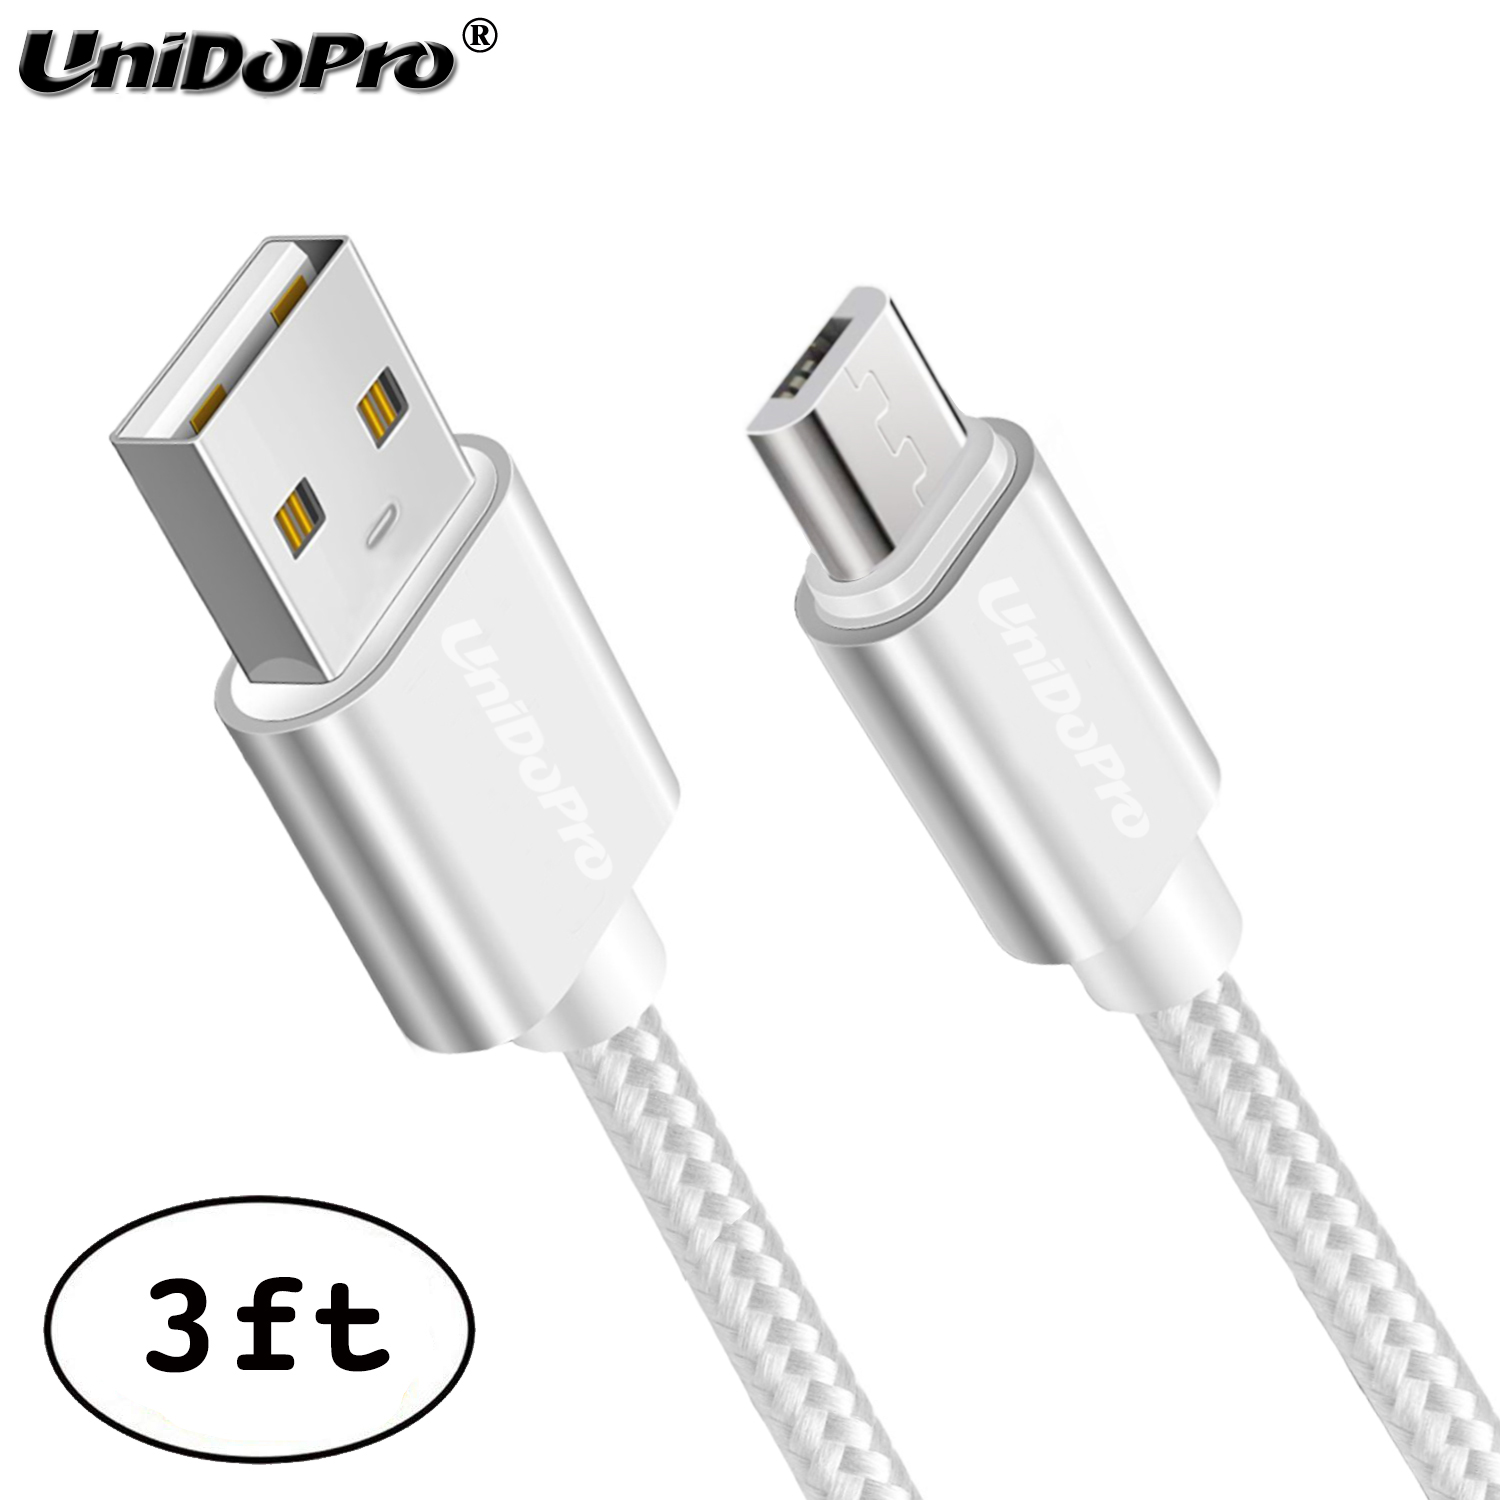 For ASUS MeMO Pad FHD 10 ME302C Micro USB Charging Data Sync Charger Cable